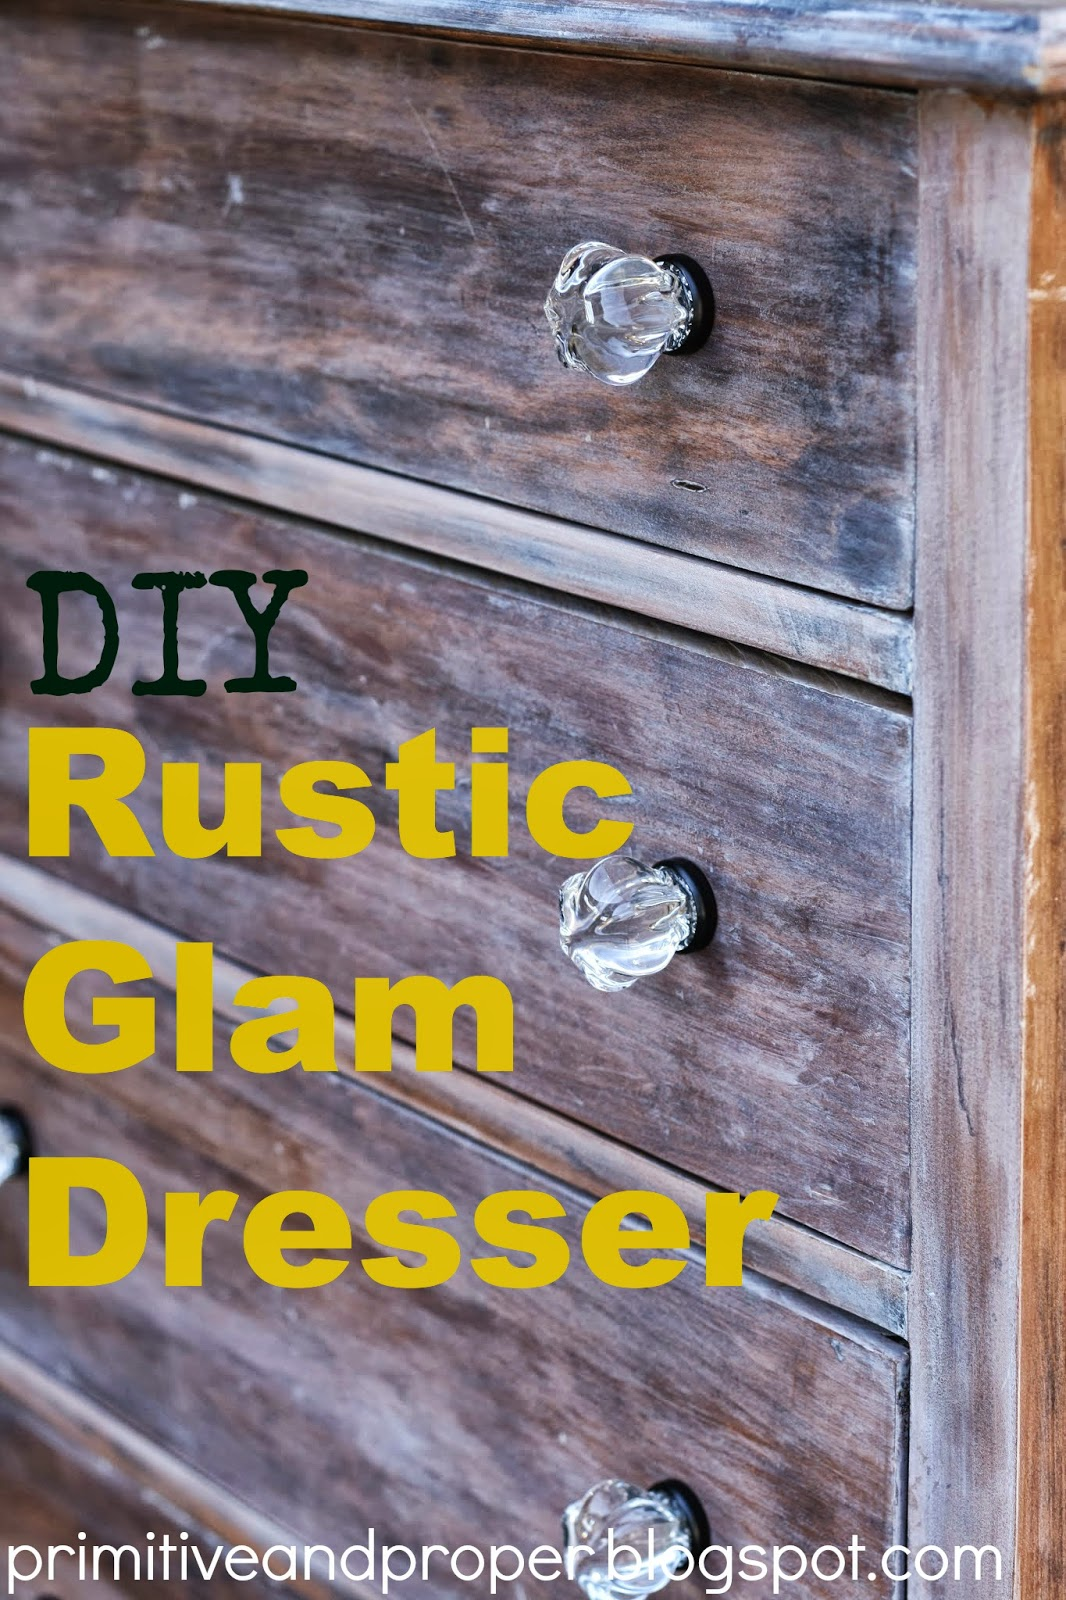 Rustic Glam Washed Dresser With Gorgeous Glass Knobs